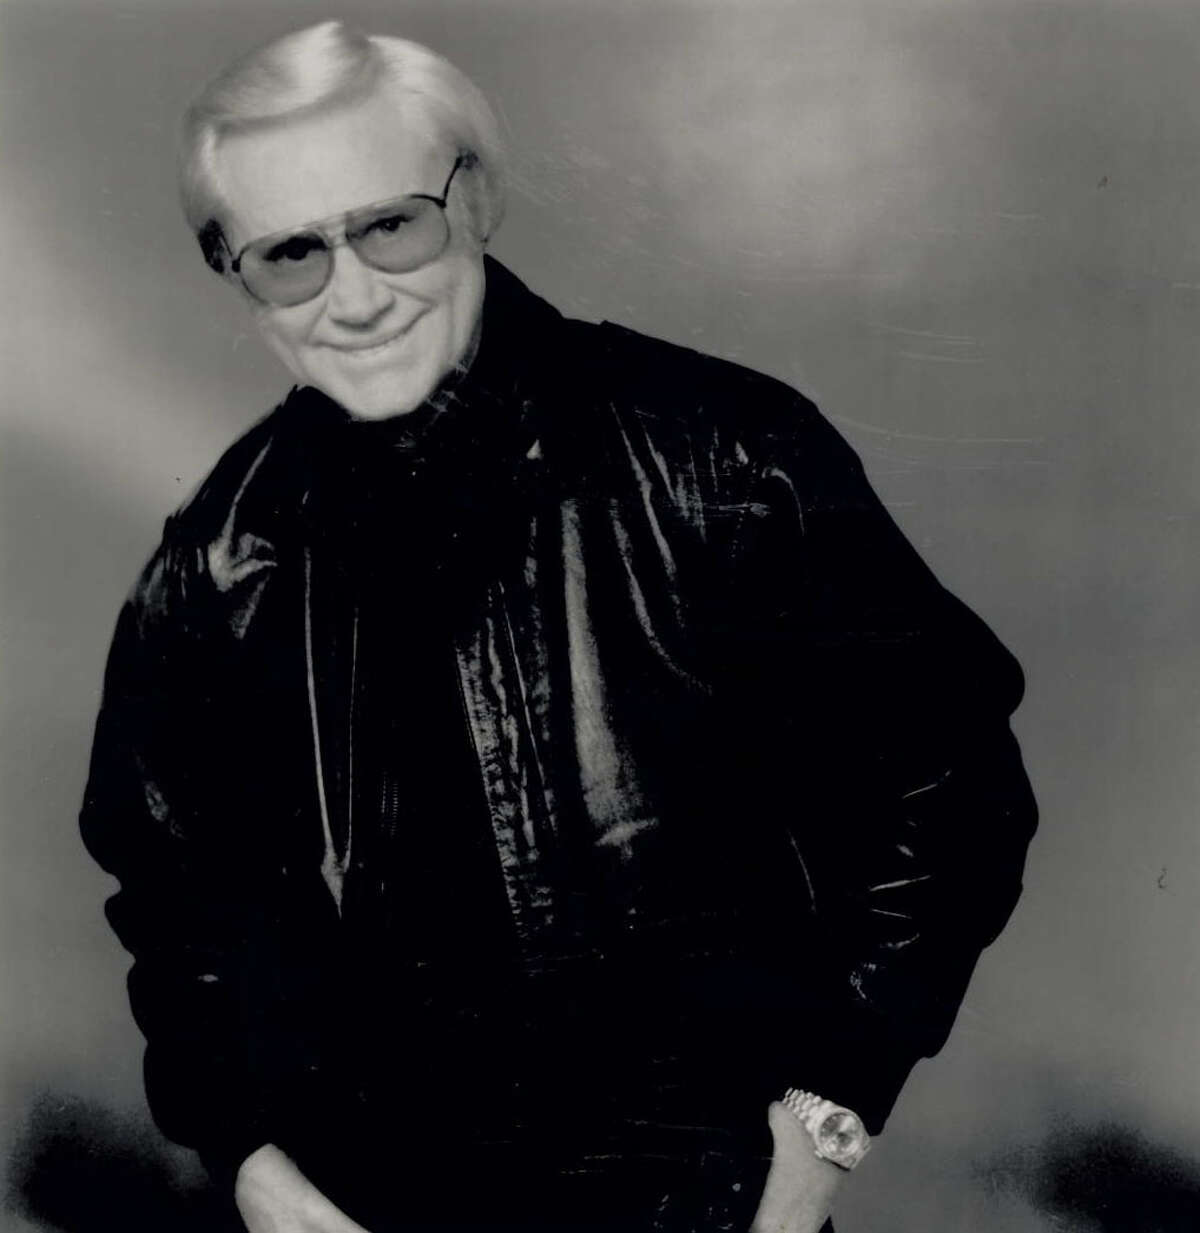 Born: Sept. 21, 1931 Died: April 26, 2013 Hometown: Vidor Country star famous for songs like